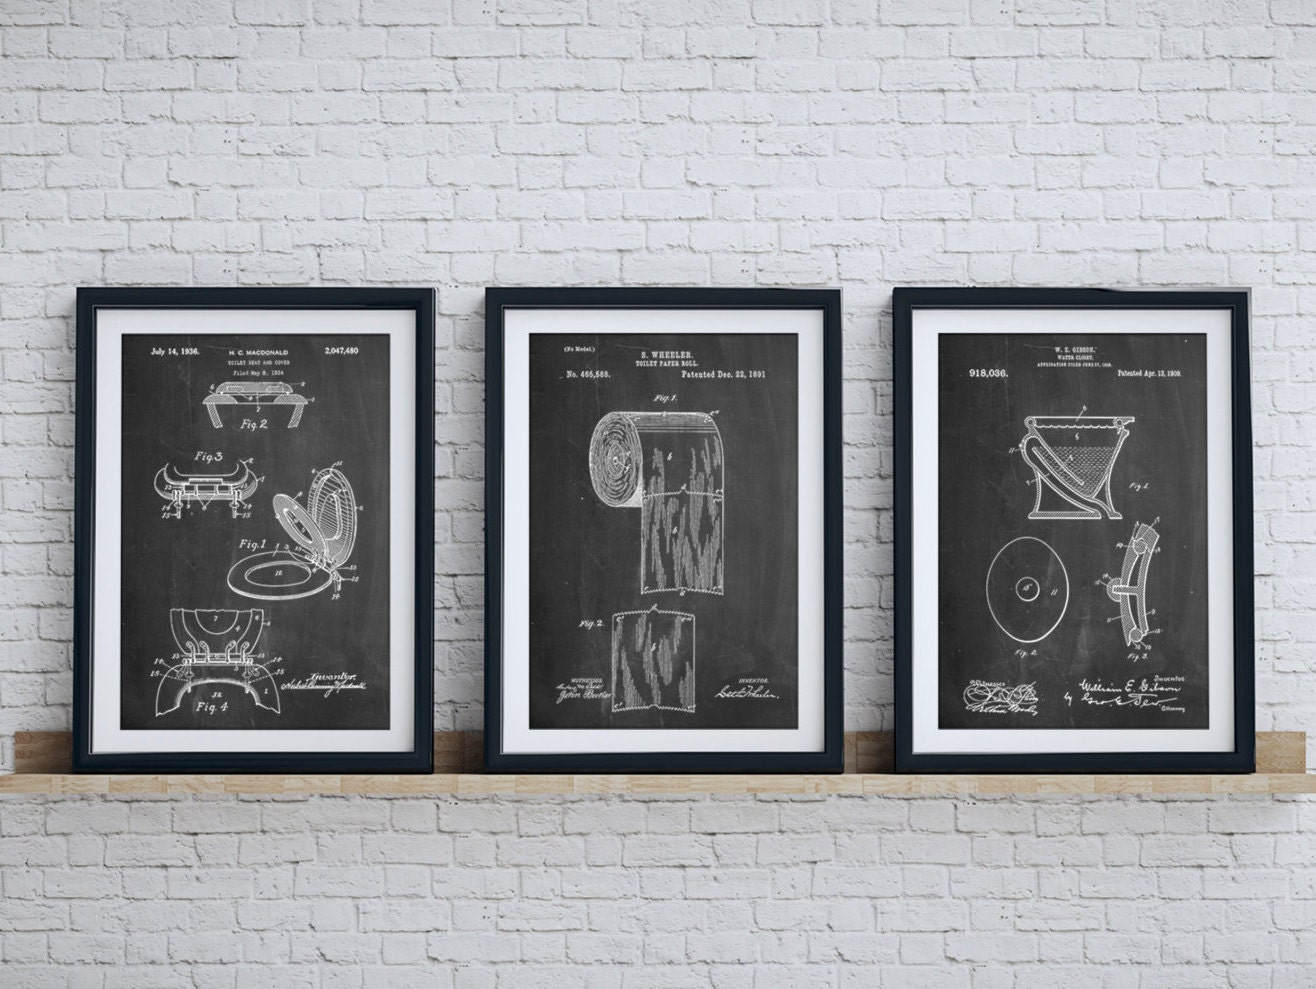 Bathroom Art Patent Posters Group of 3, Bathroom Wall Decor, Toilet Seat, Toilet